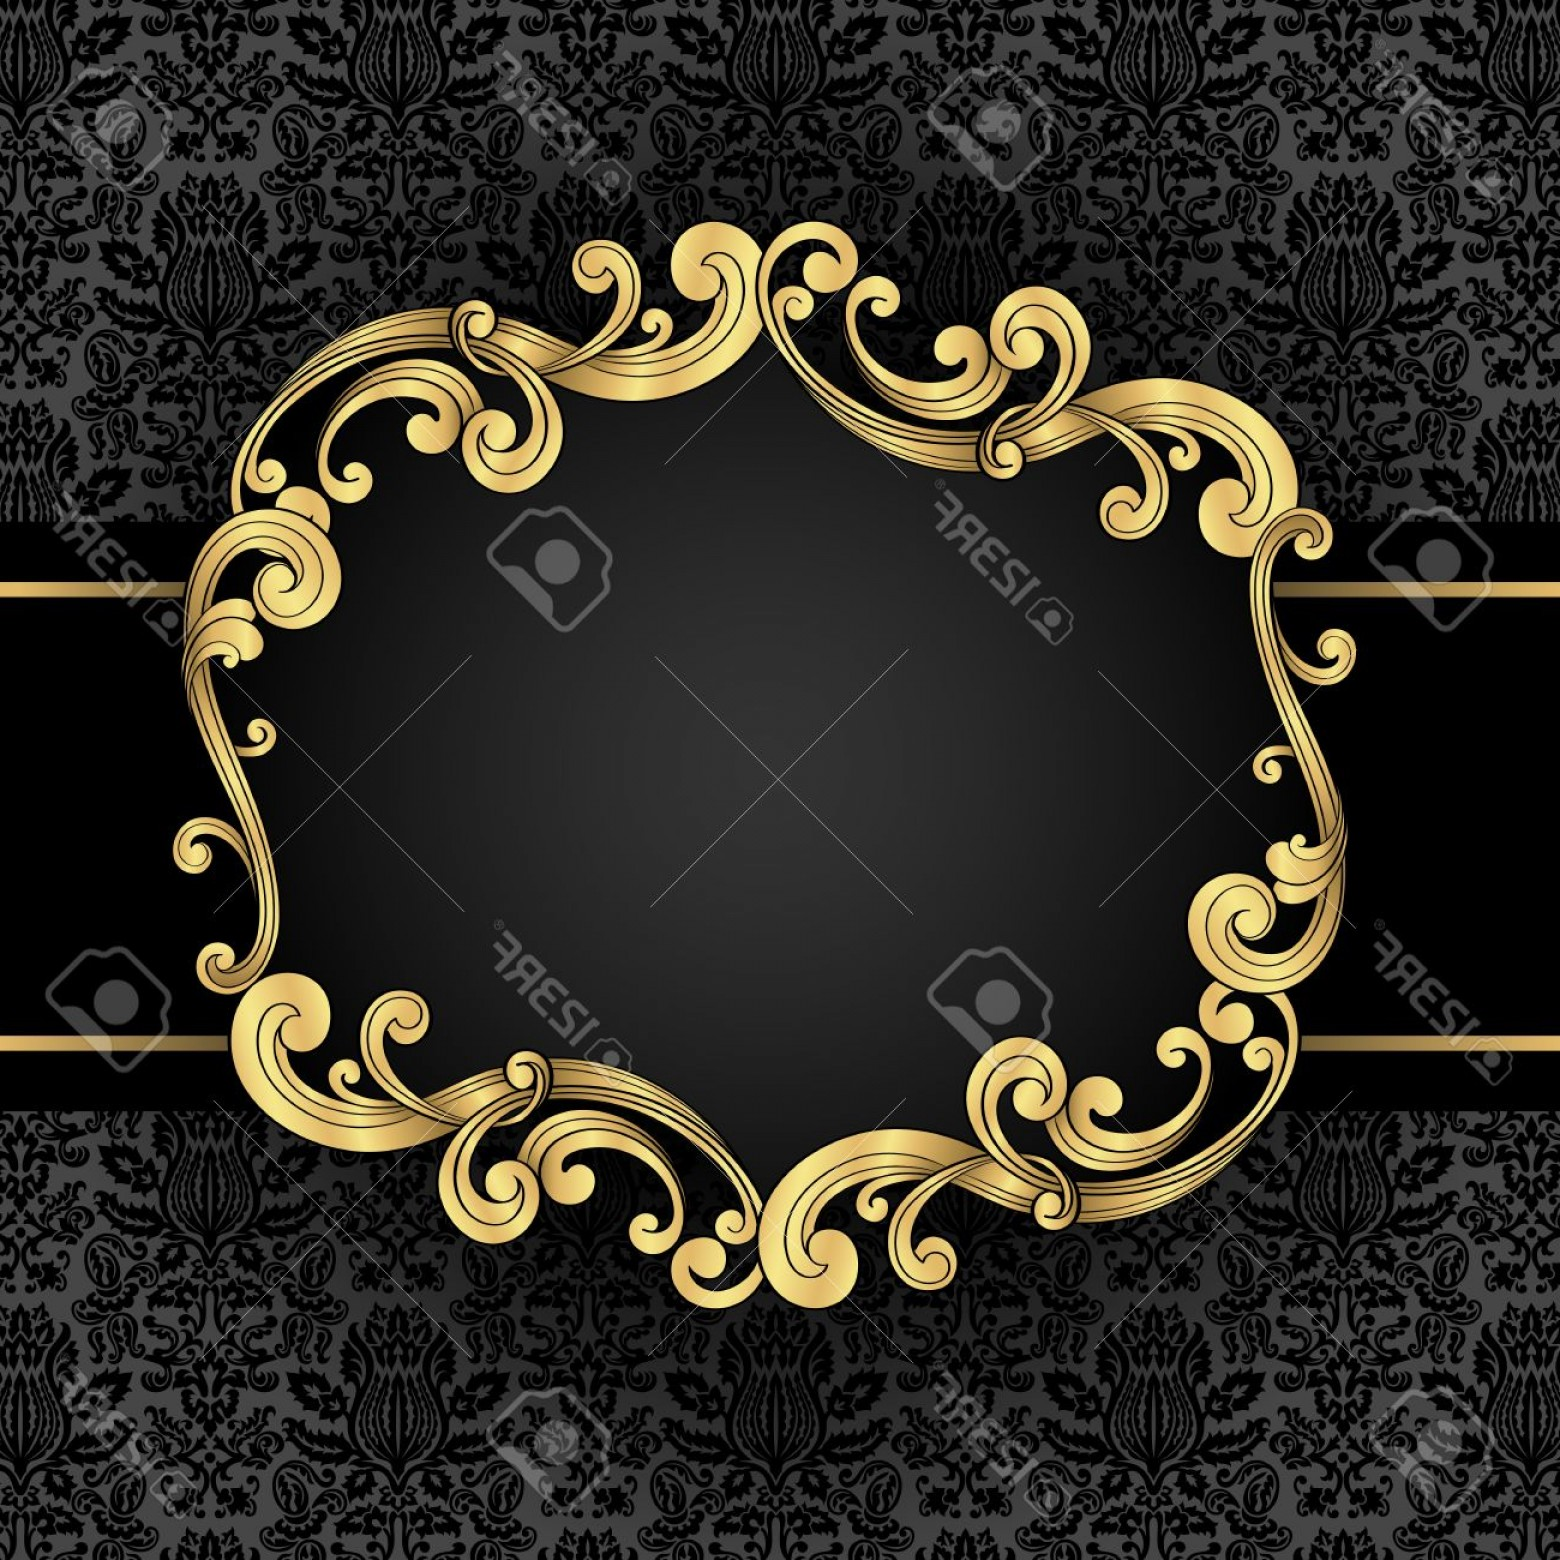 Vector Ornate Vintage Frame Blank: Photostock Vector Ornate Gold Frame Gold Ornate Vintage Frame With Seamless Damask Background File Is Layered For Easy